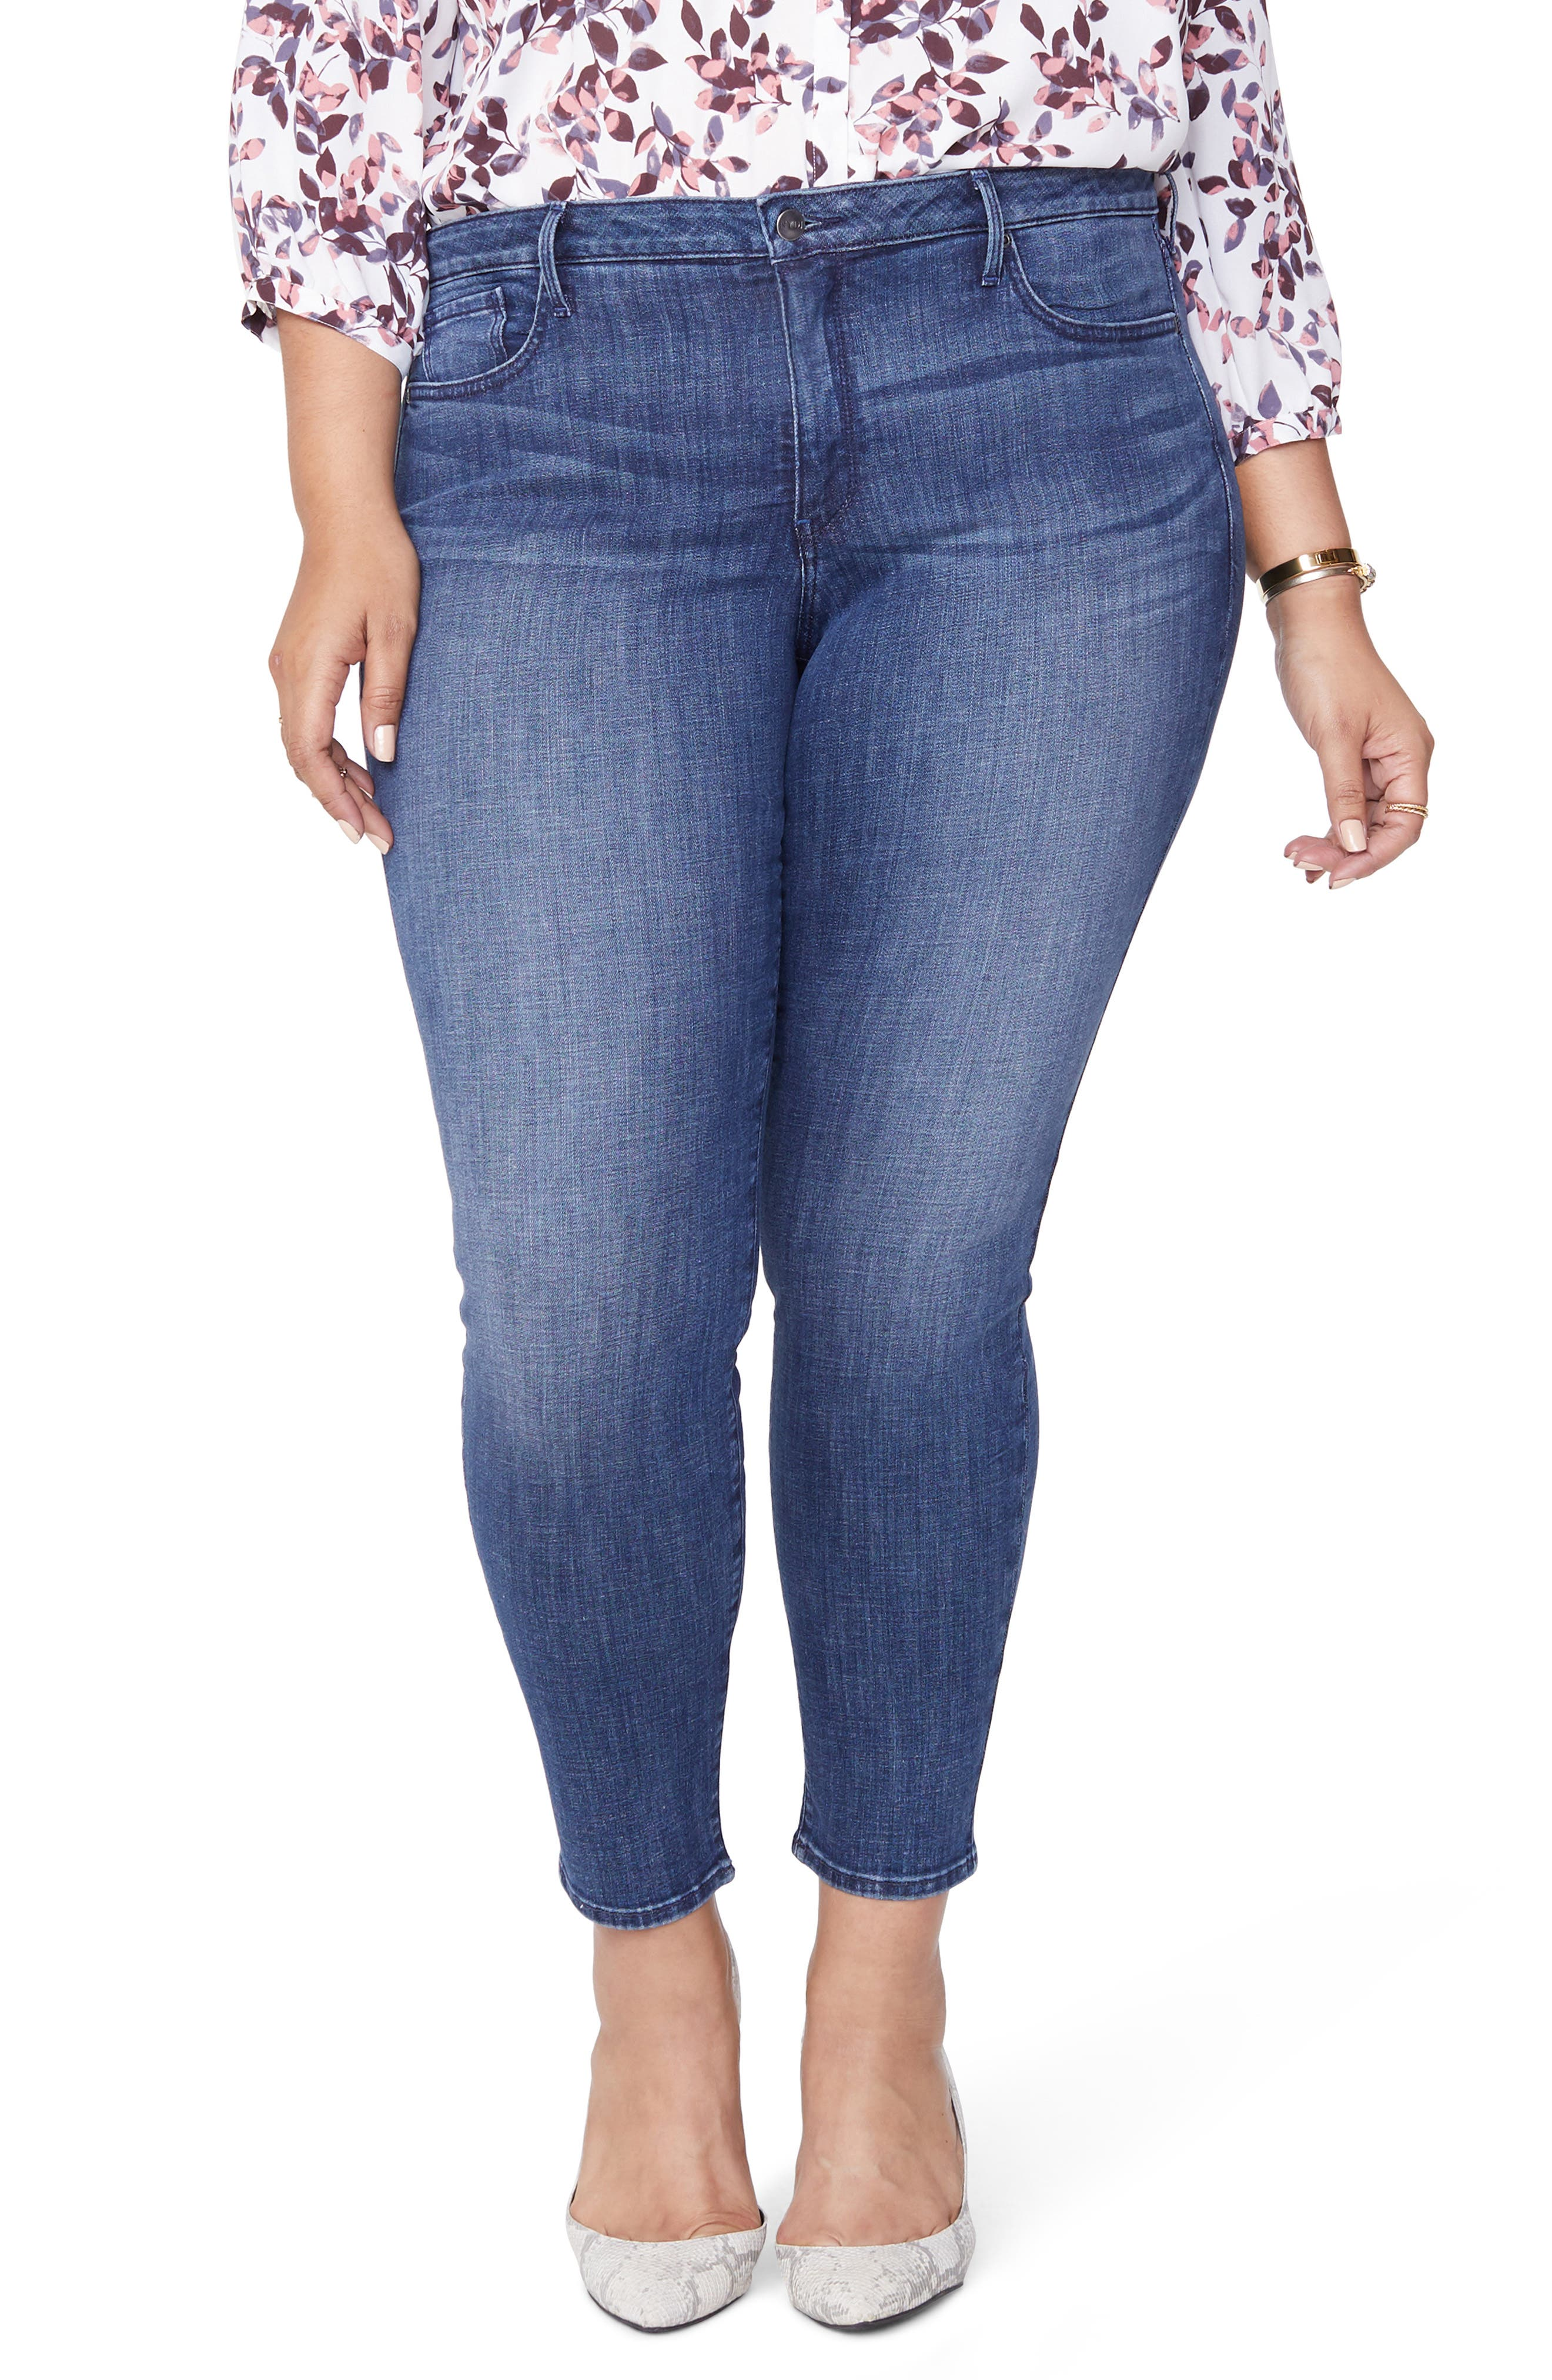 Ami Skinny Jeans,                         Main,                         color, LUPINE